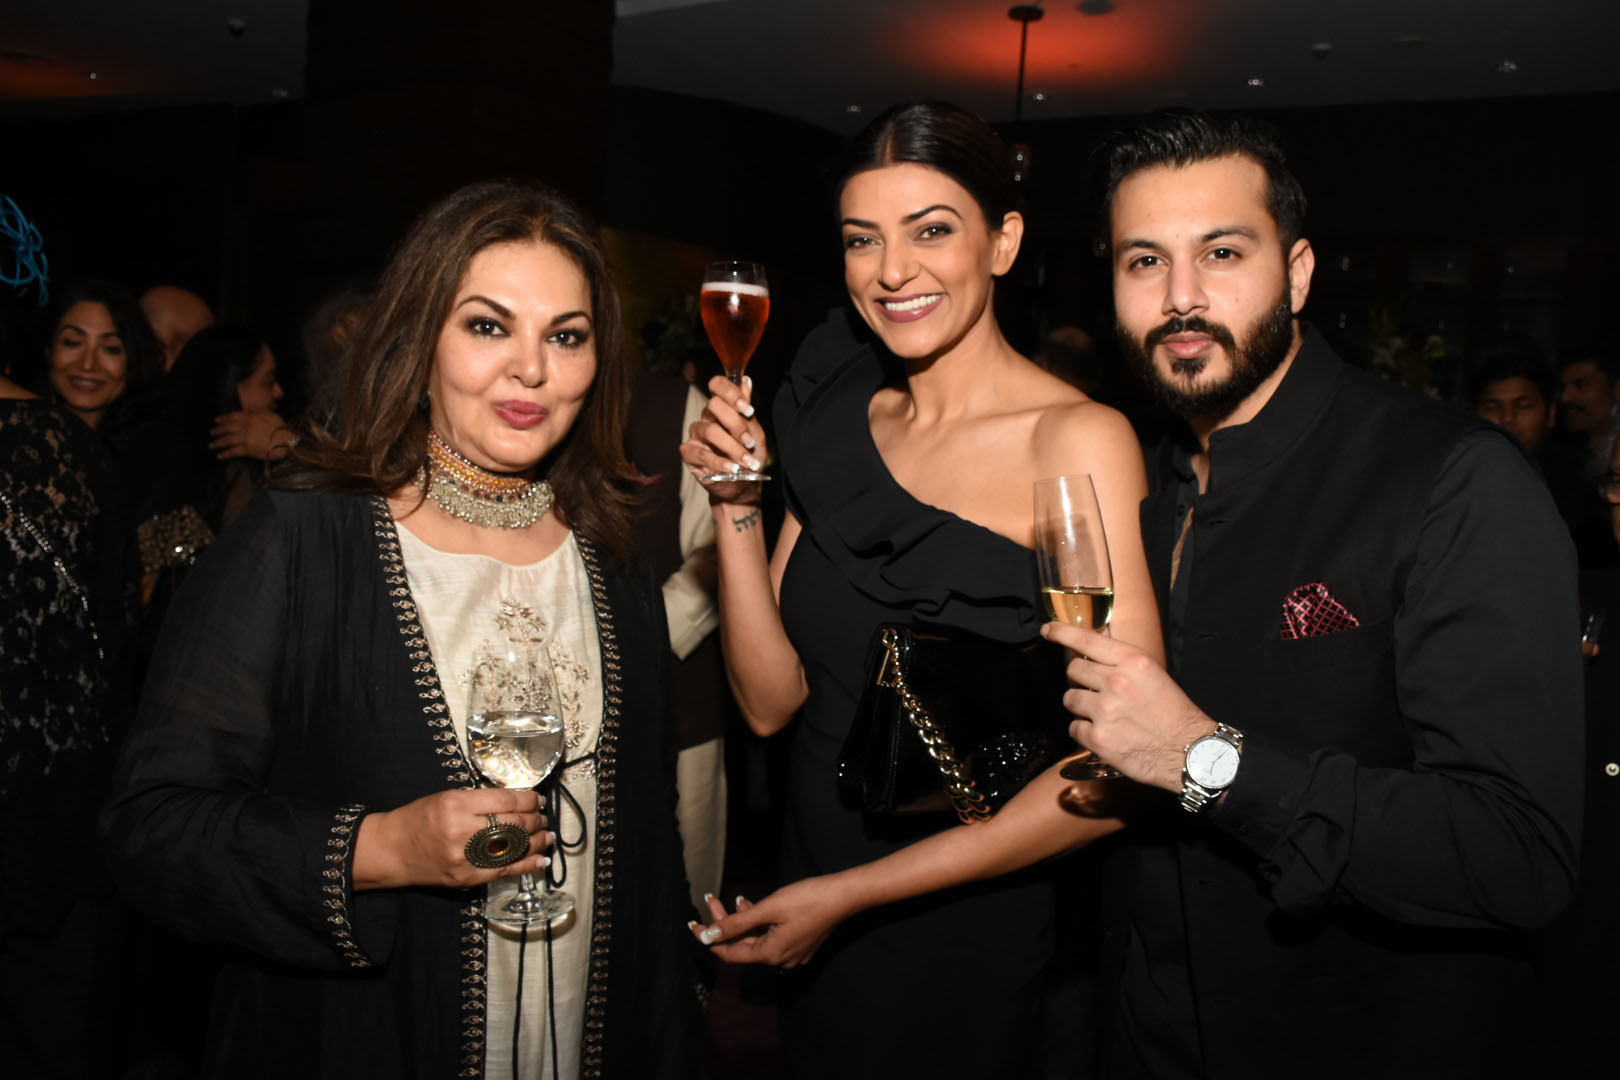 Birthday, Event, Featured, Malavika Sangghvi, Mumbai, Pomp, Raaj Sanghvi, St Regis